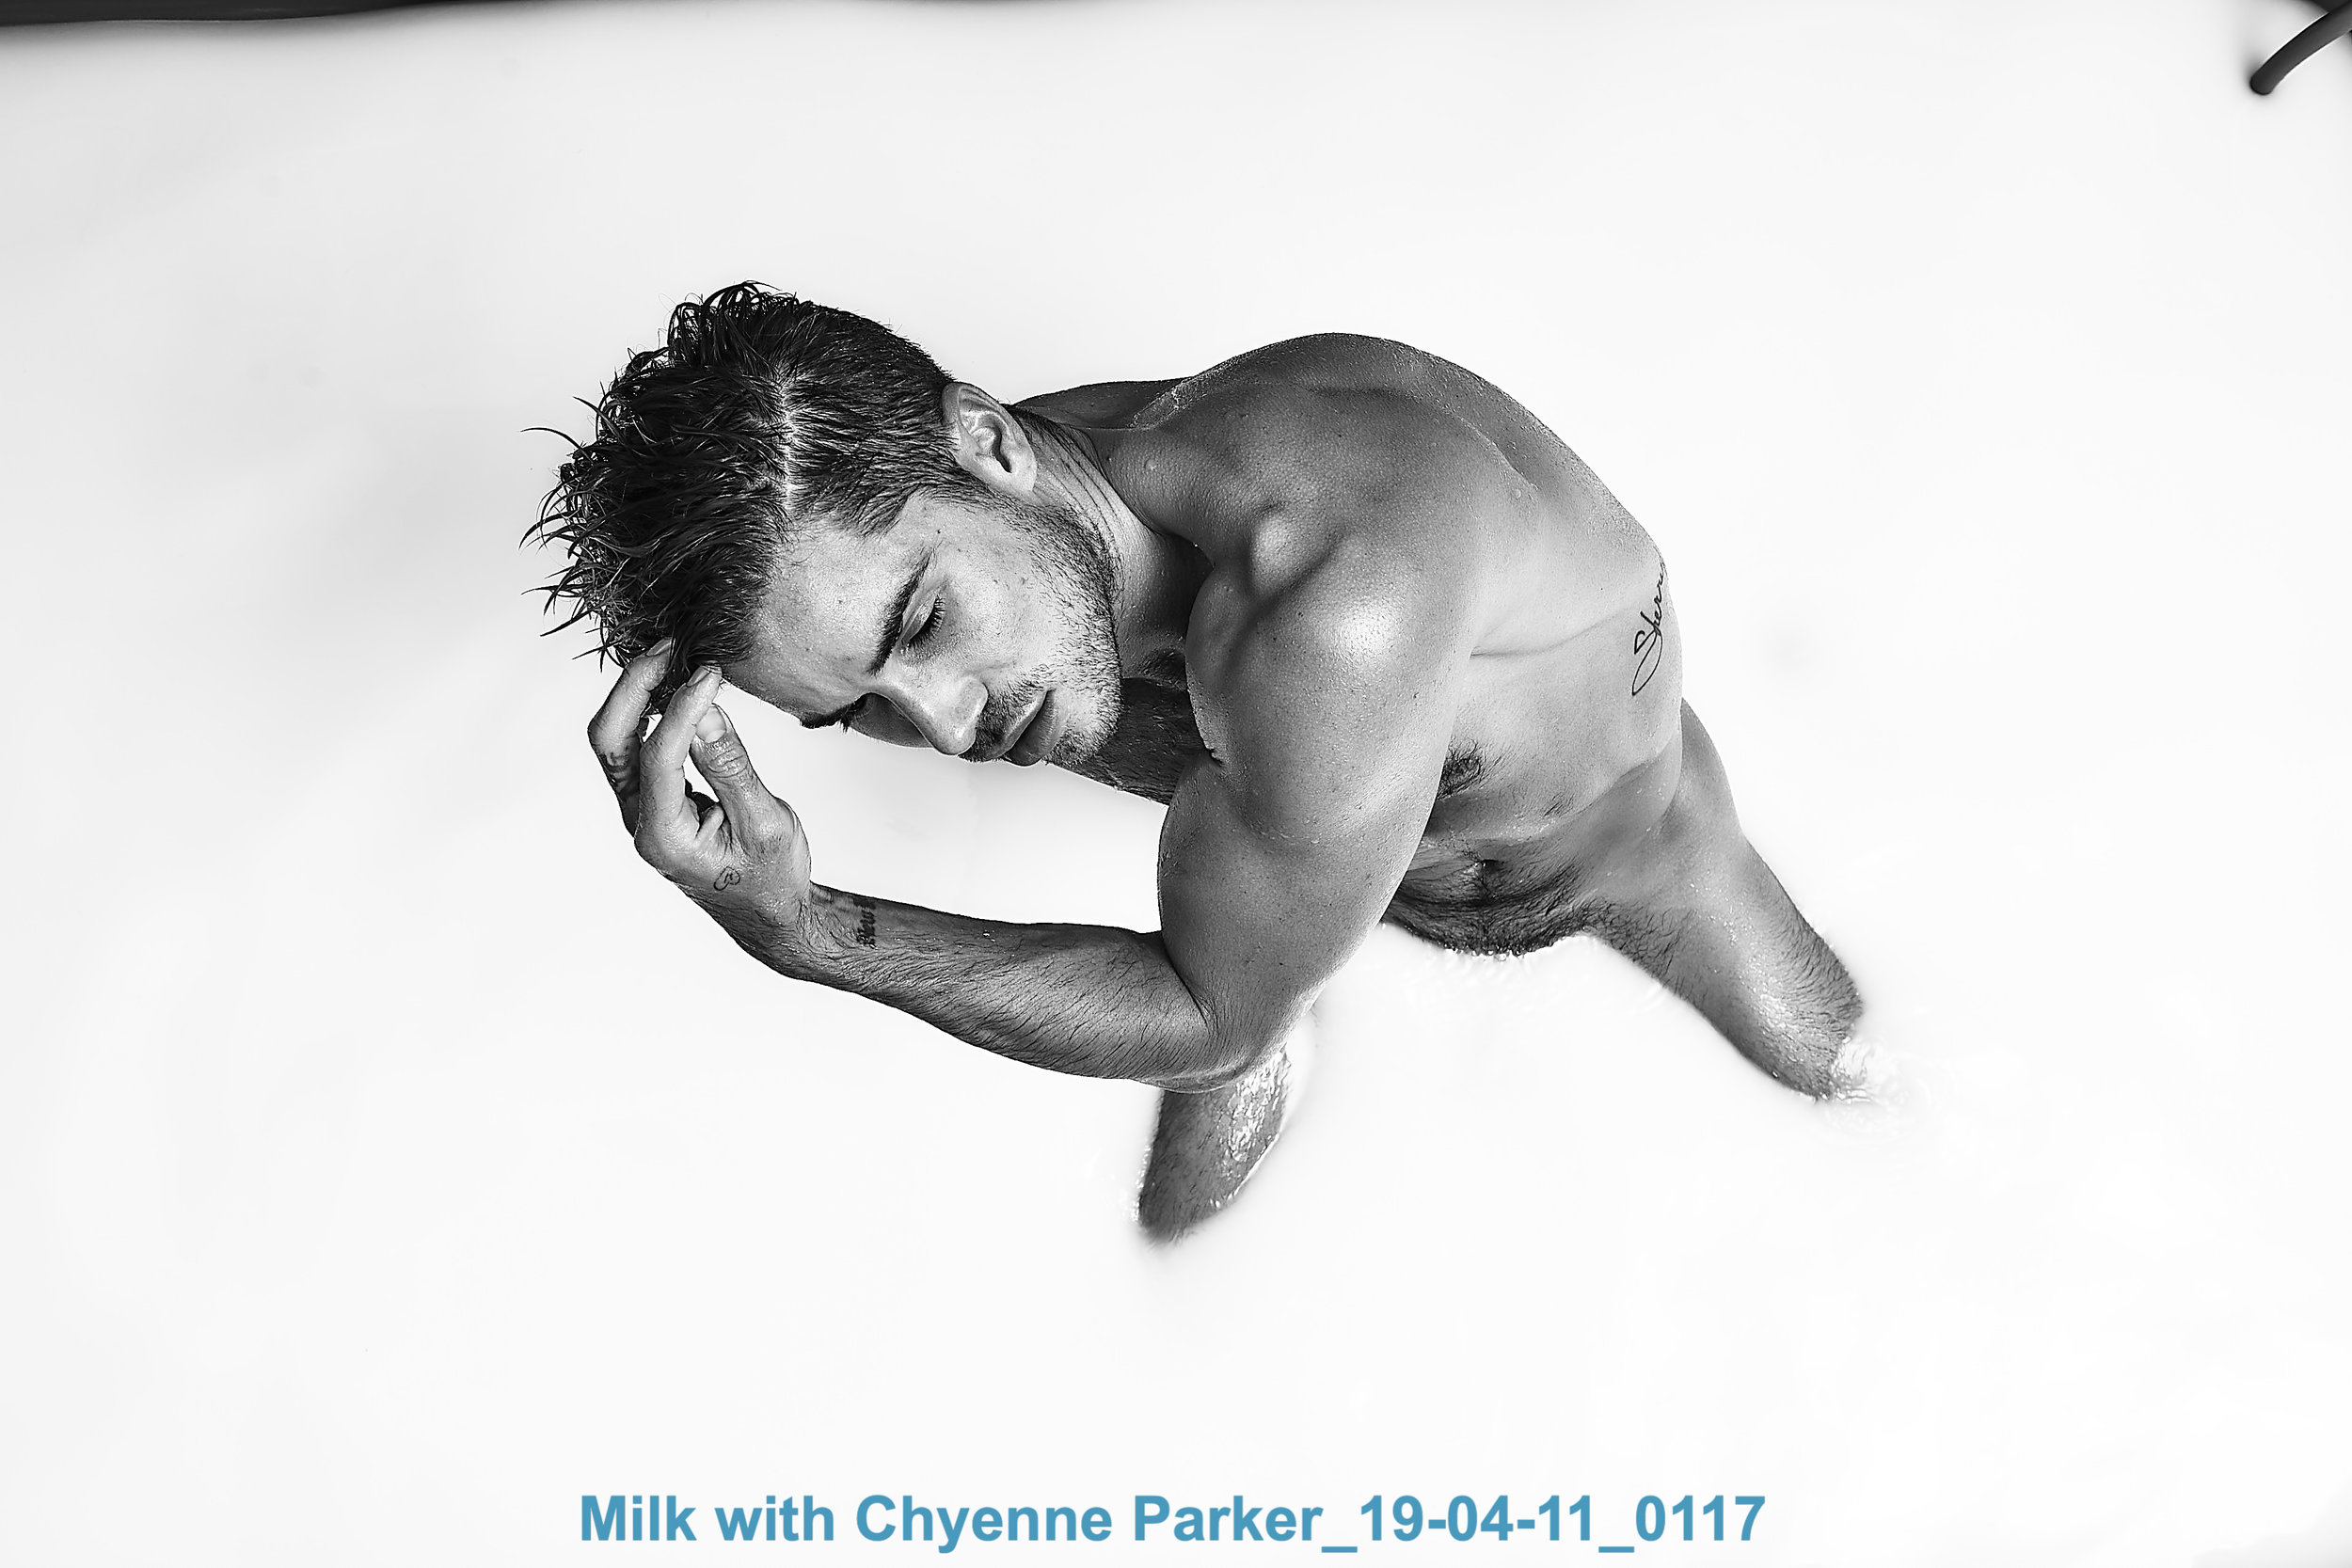 Milk with Chyenne Parker_19-04-11_0117.jpg